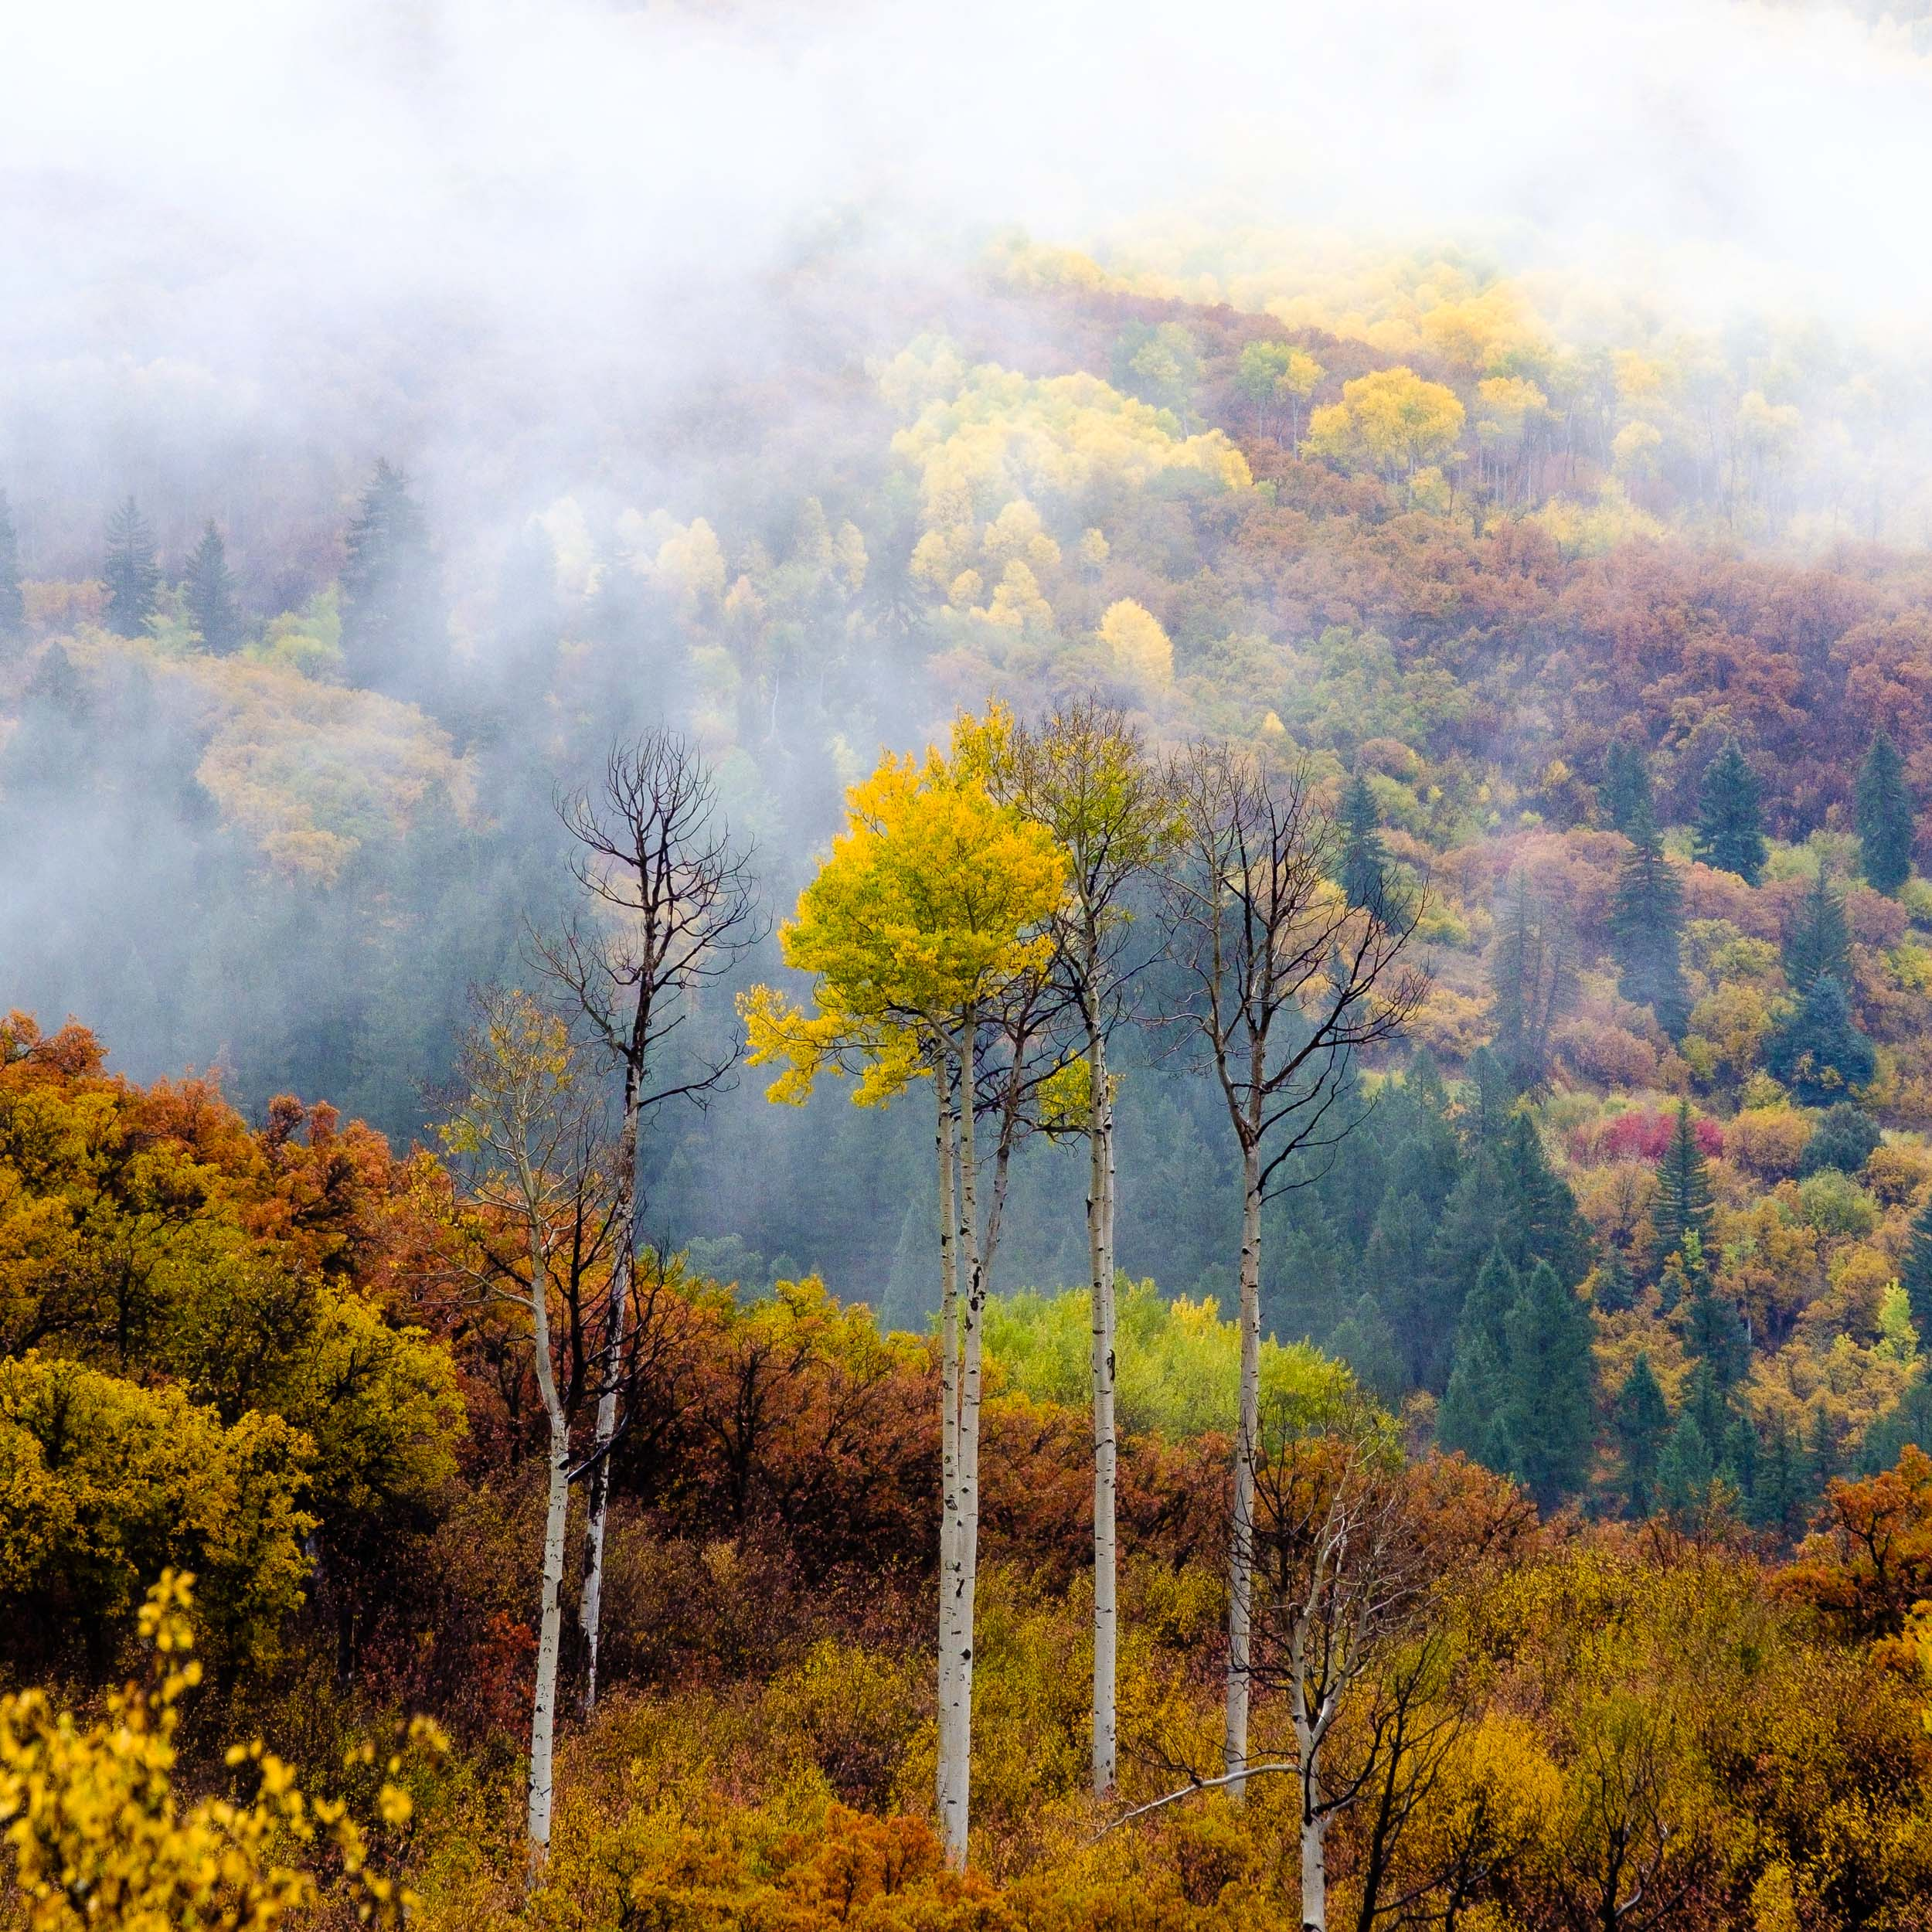 Lone aspen tree stands out amongst the fog along Kebler Pass Road in the West Elk Mountains - Fuji XT2, XF 50-140mm f/2.8 @ 134.4mm